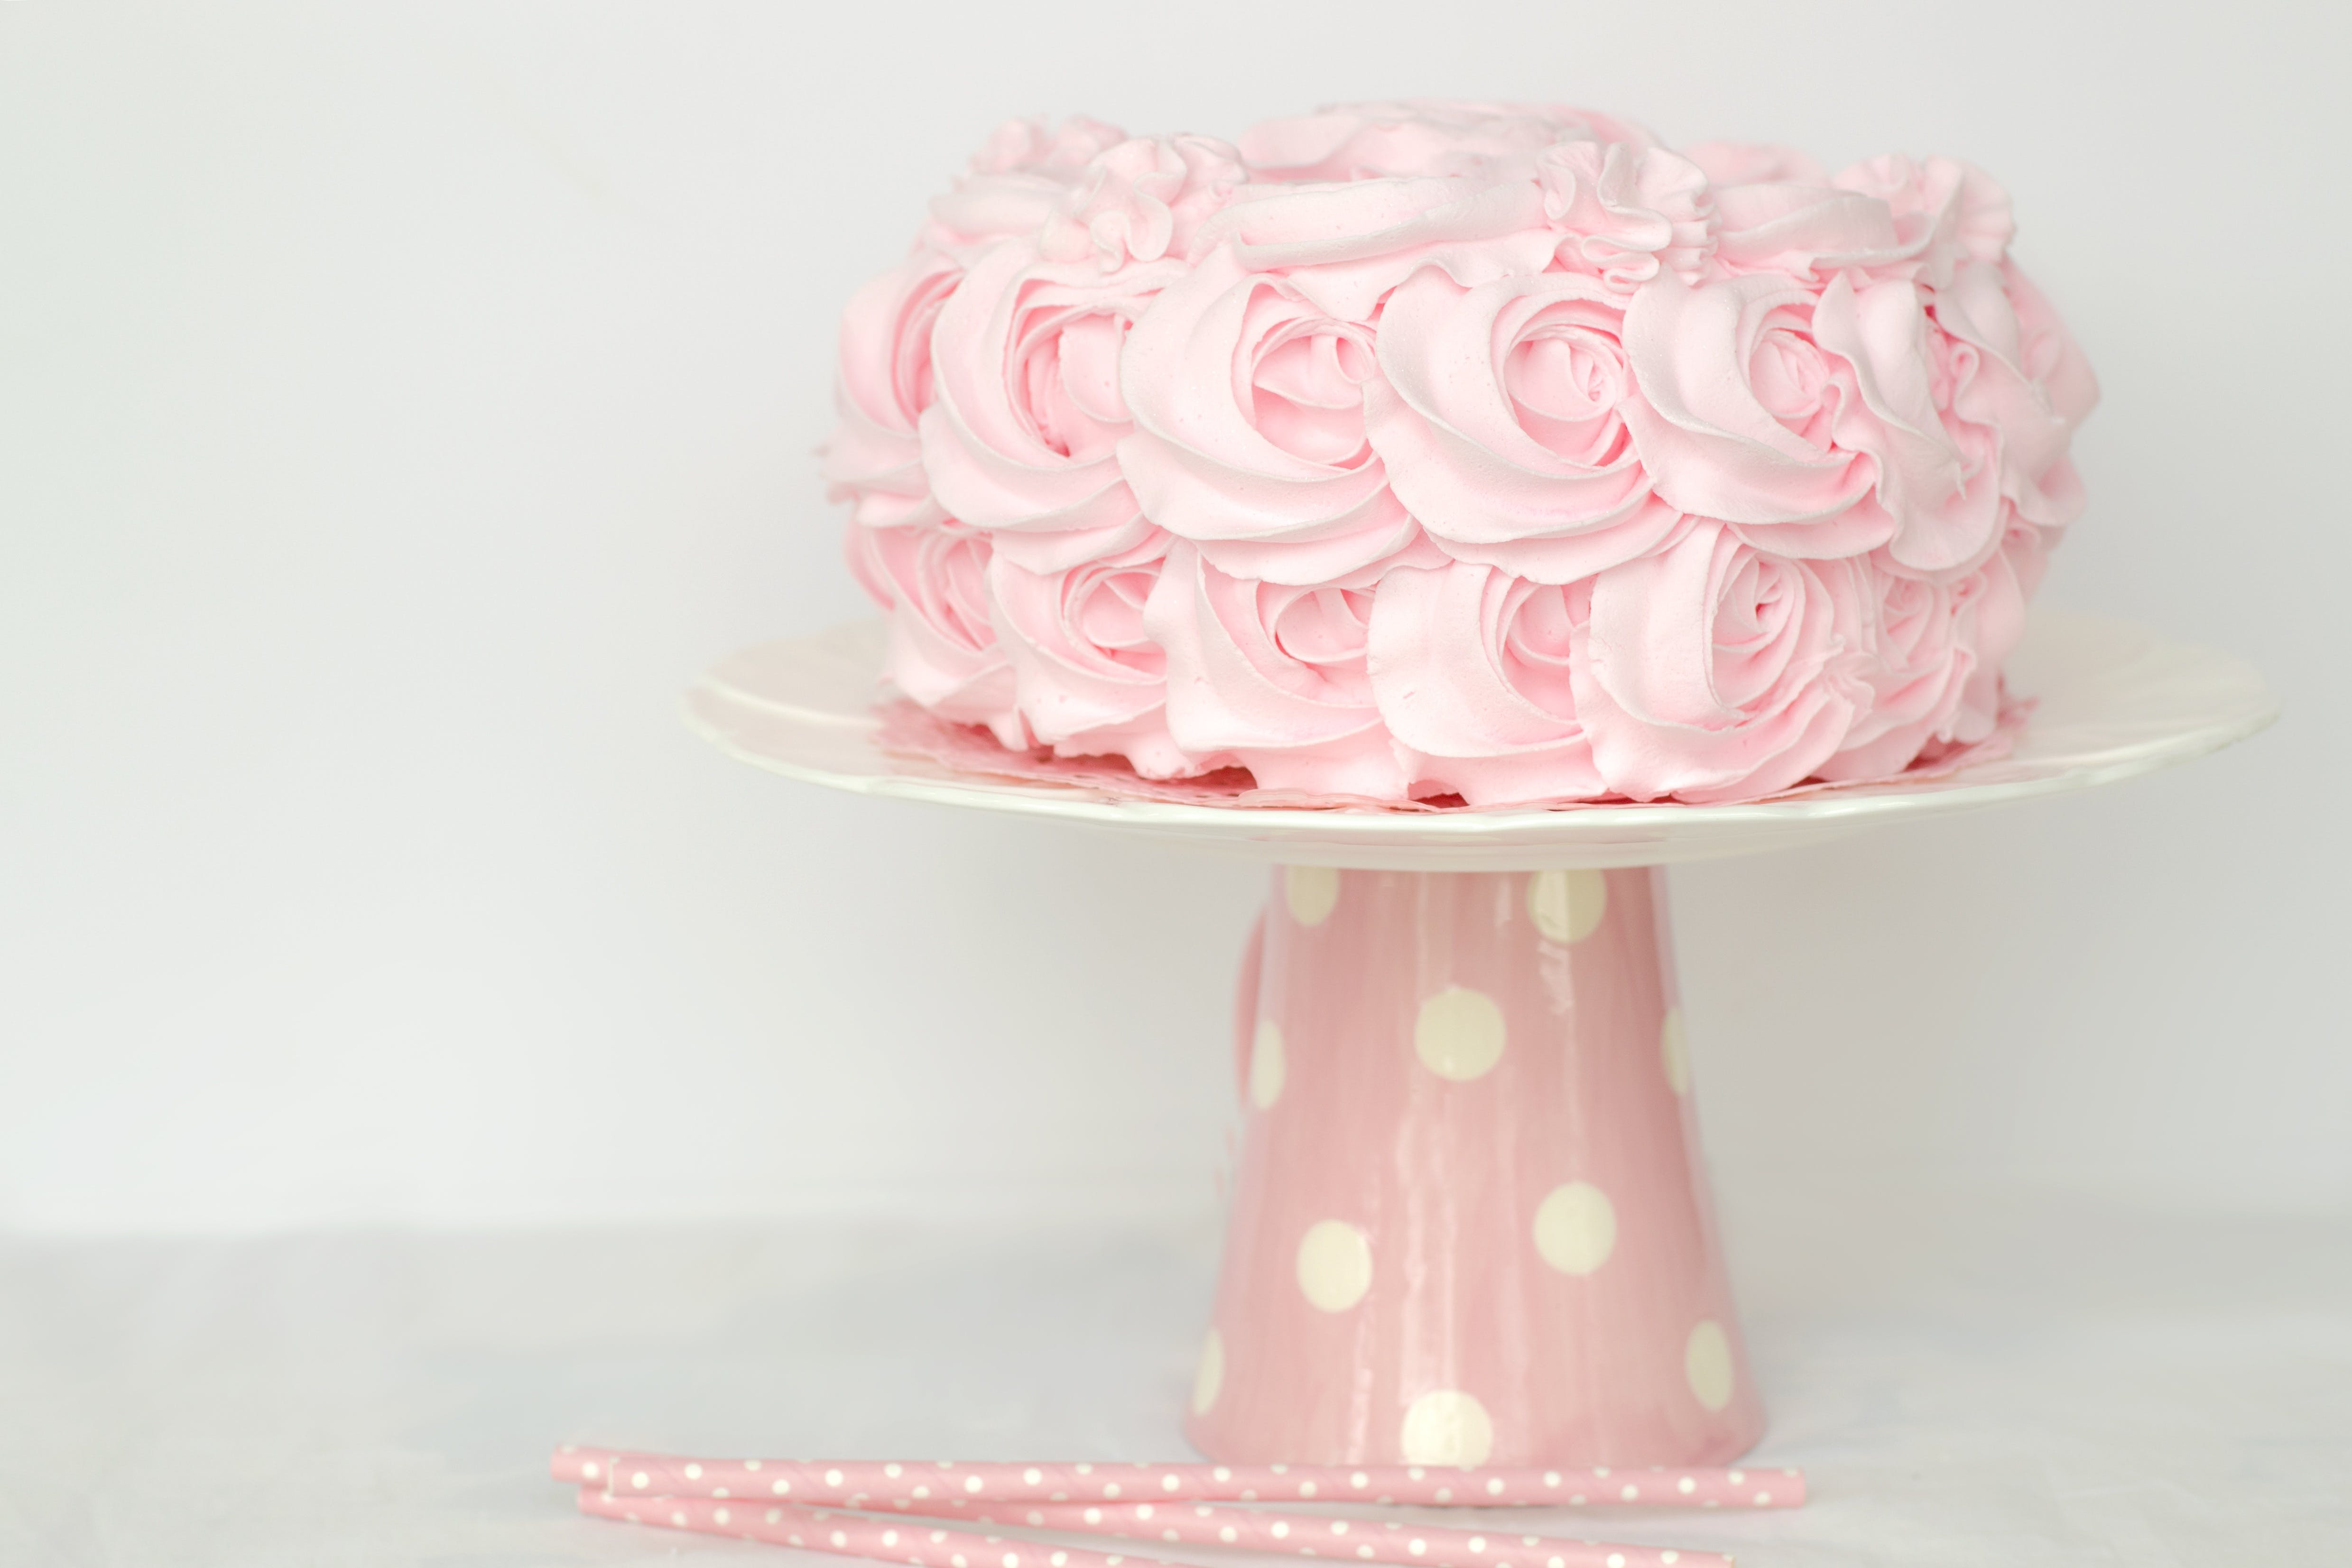 Pink Icing-covered Cake